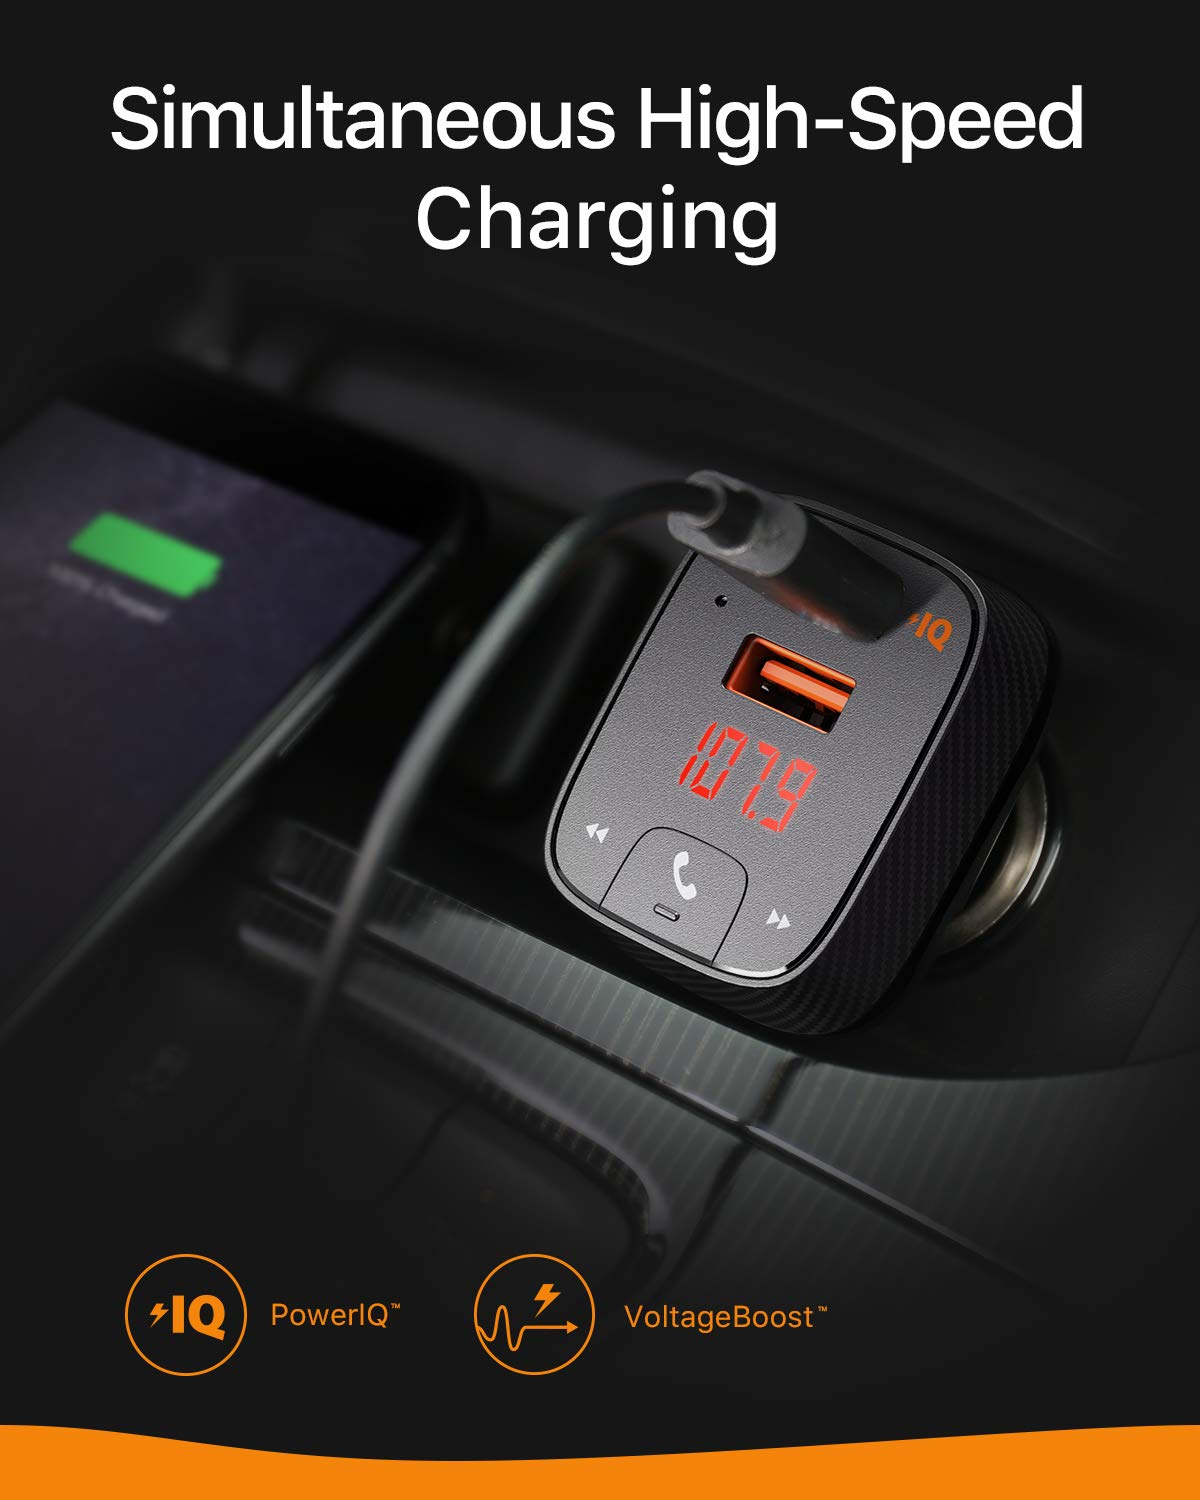 Roav SmartCharge F2, by Anker, FM Transmitter, Bluetooth Receiver, Car Charger with Bluetooth 4.2, Car Locator, App Support, 2 USB Ports, PowerIQ, AUX Output, and USB Drive to Play MP3 Files by ROAV (Image #6)